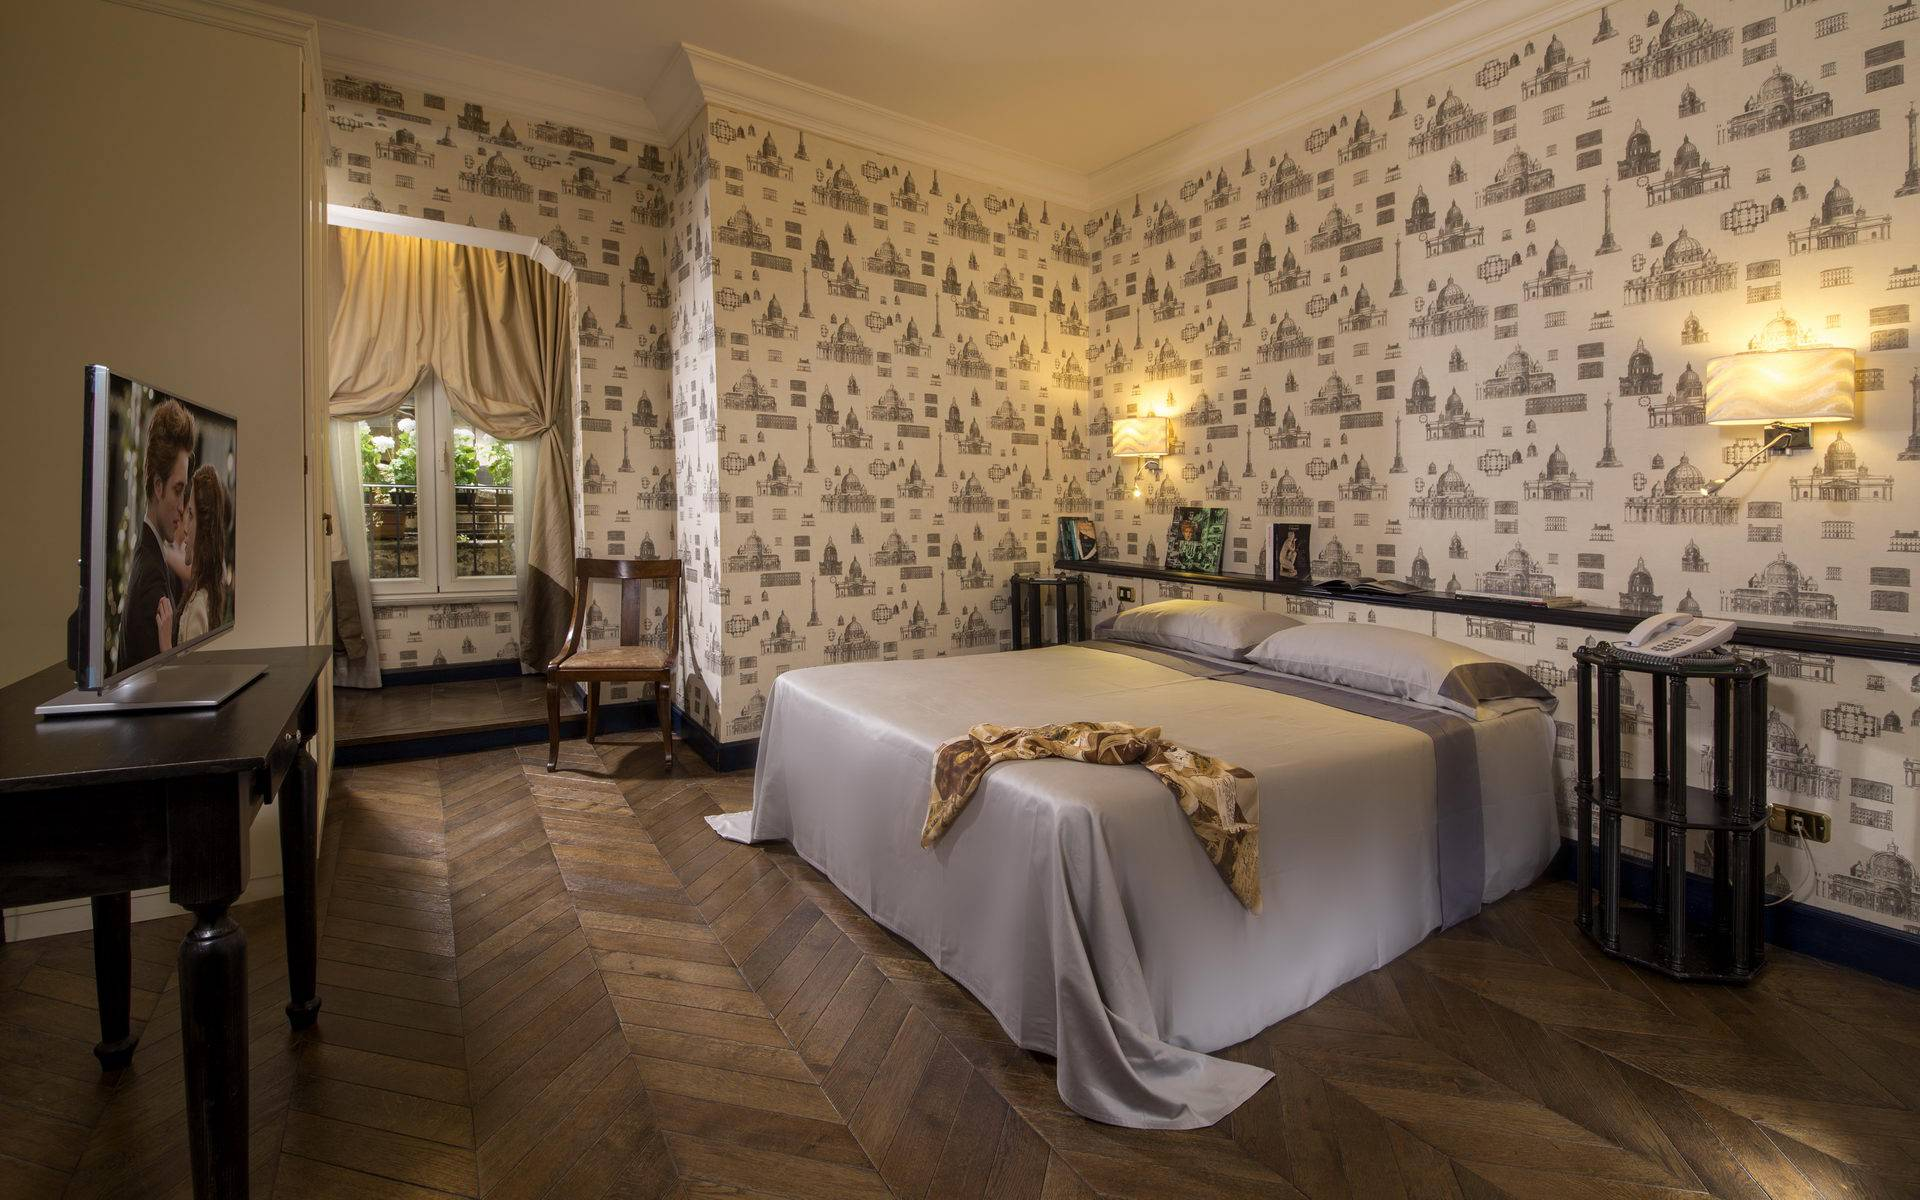 hotels-rome-centrew-boutique-hotel-anahi-camere-12-2